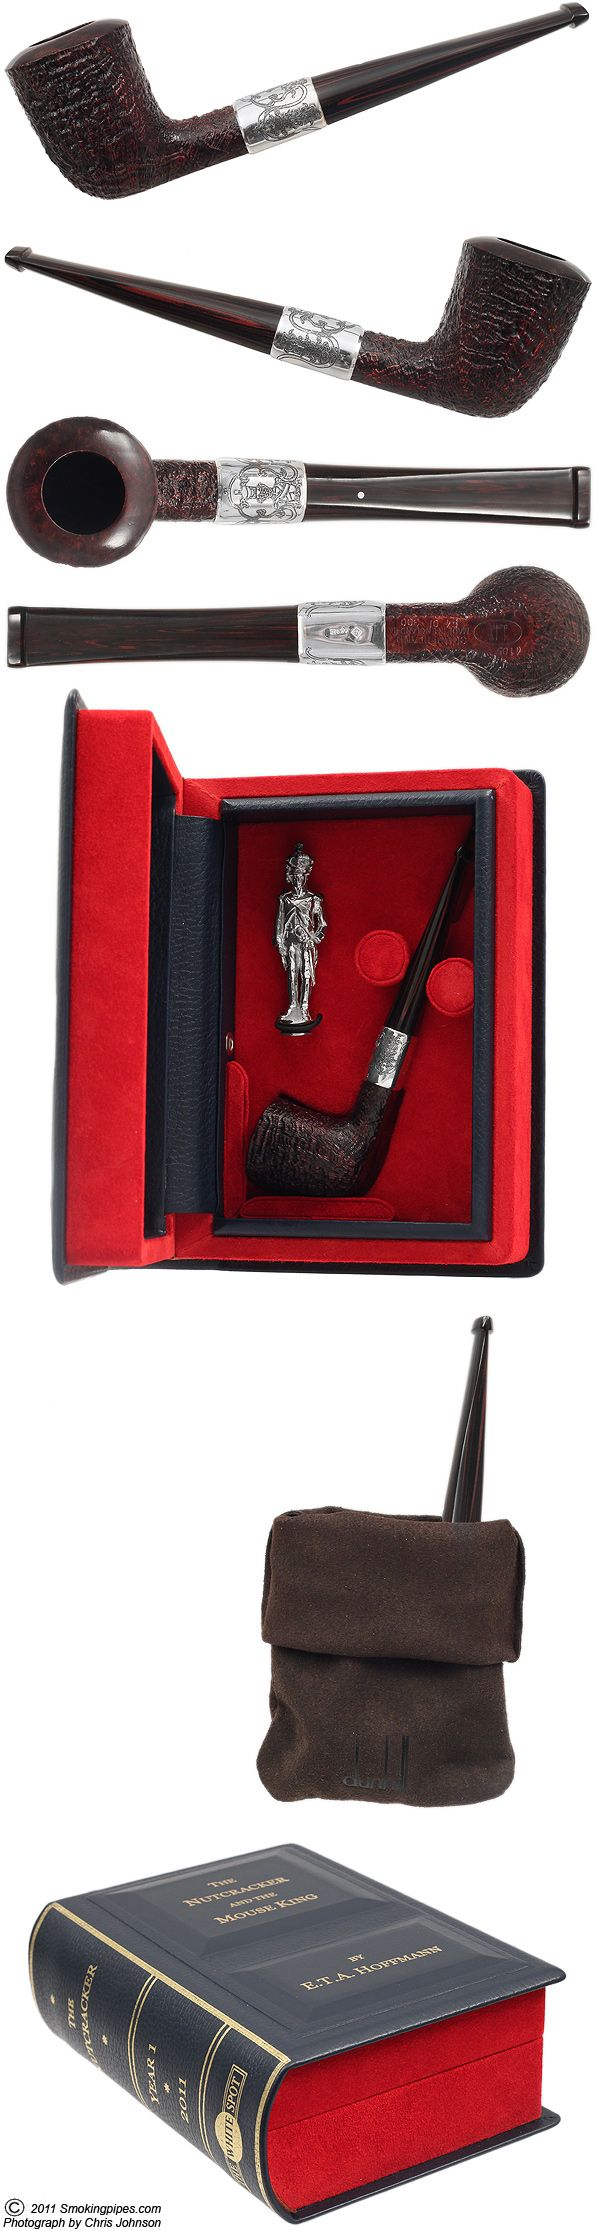 Dunhill: Christmas Pipe 2011 Cumberland (4105) (54/300)                                                                                                                                                                                 More